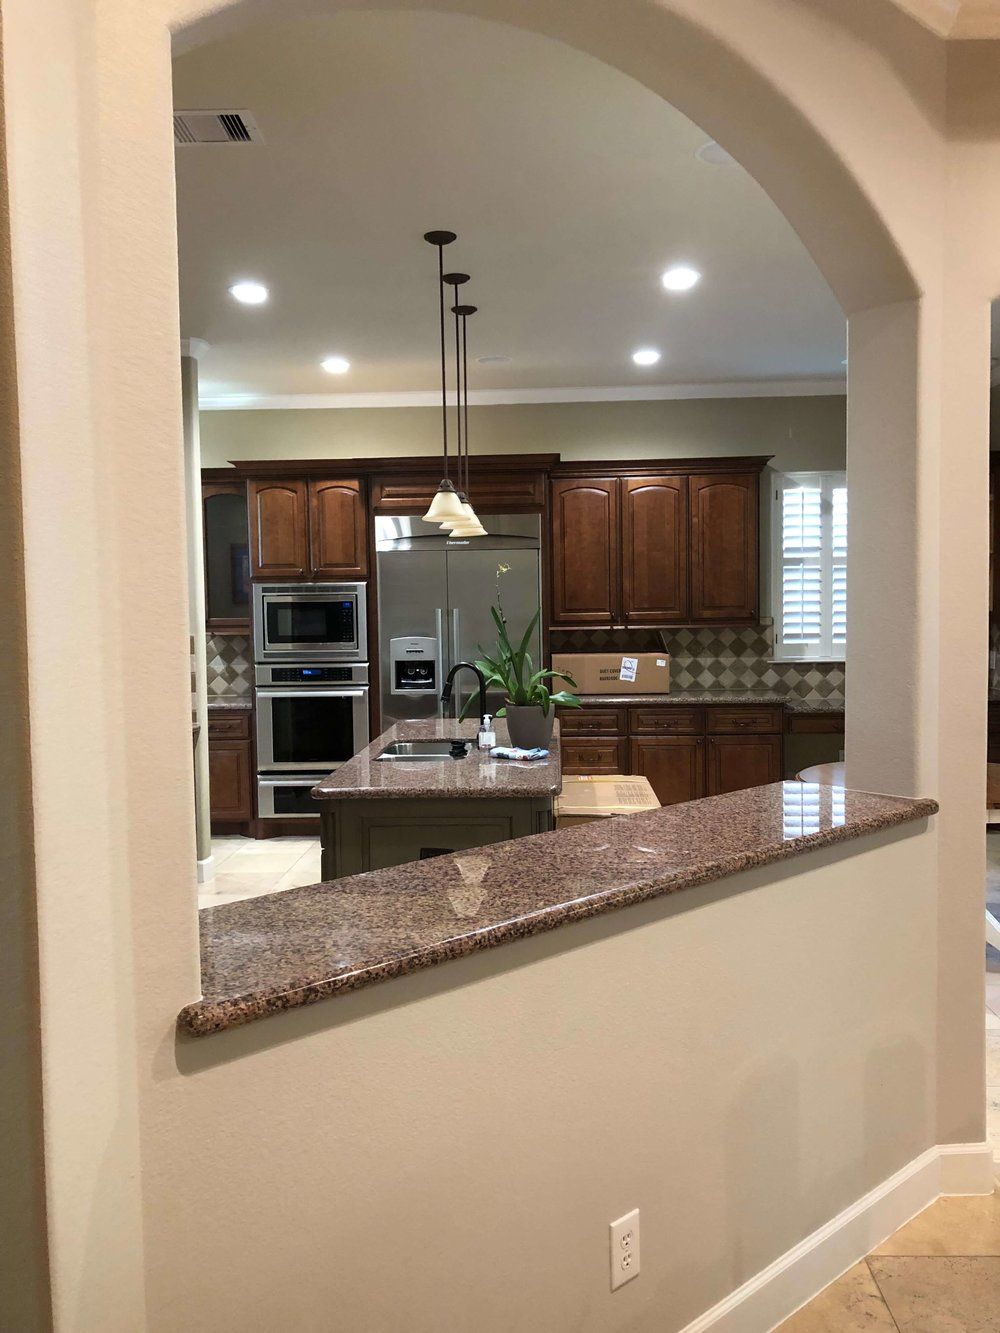 BEFORE - We took down this short bar wall and the arch to open the kitchen up more to the family room. #kitchenremodel